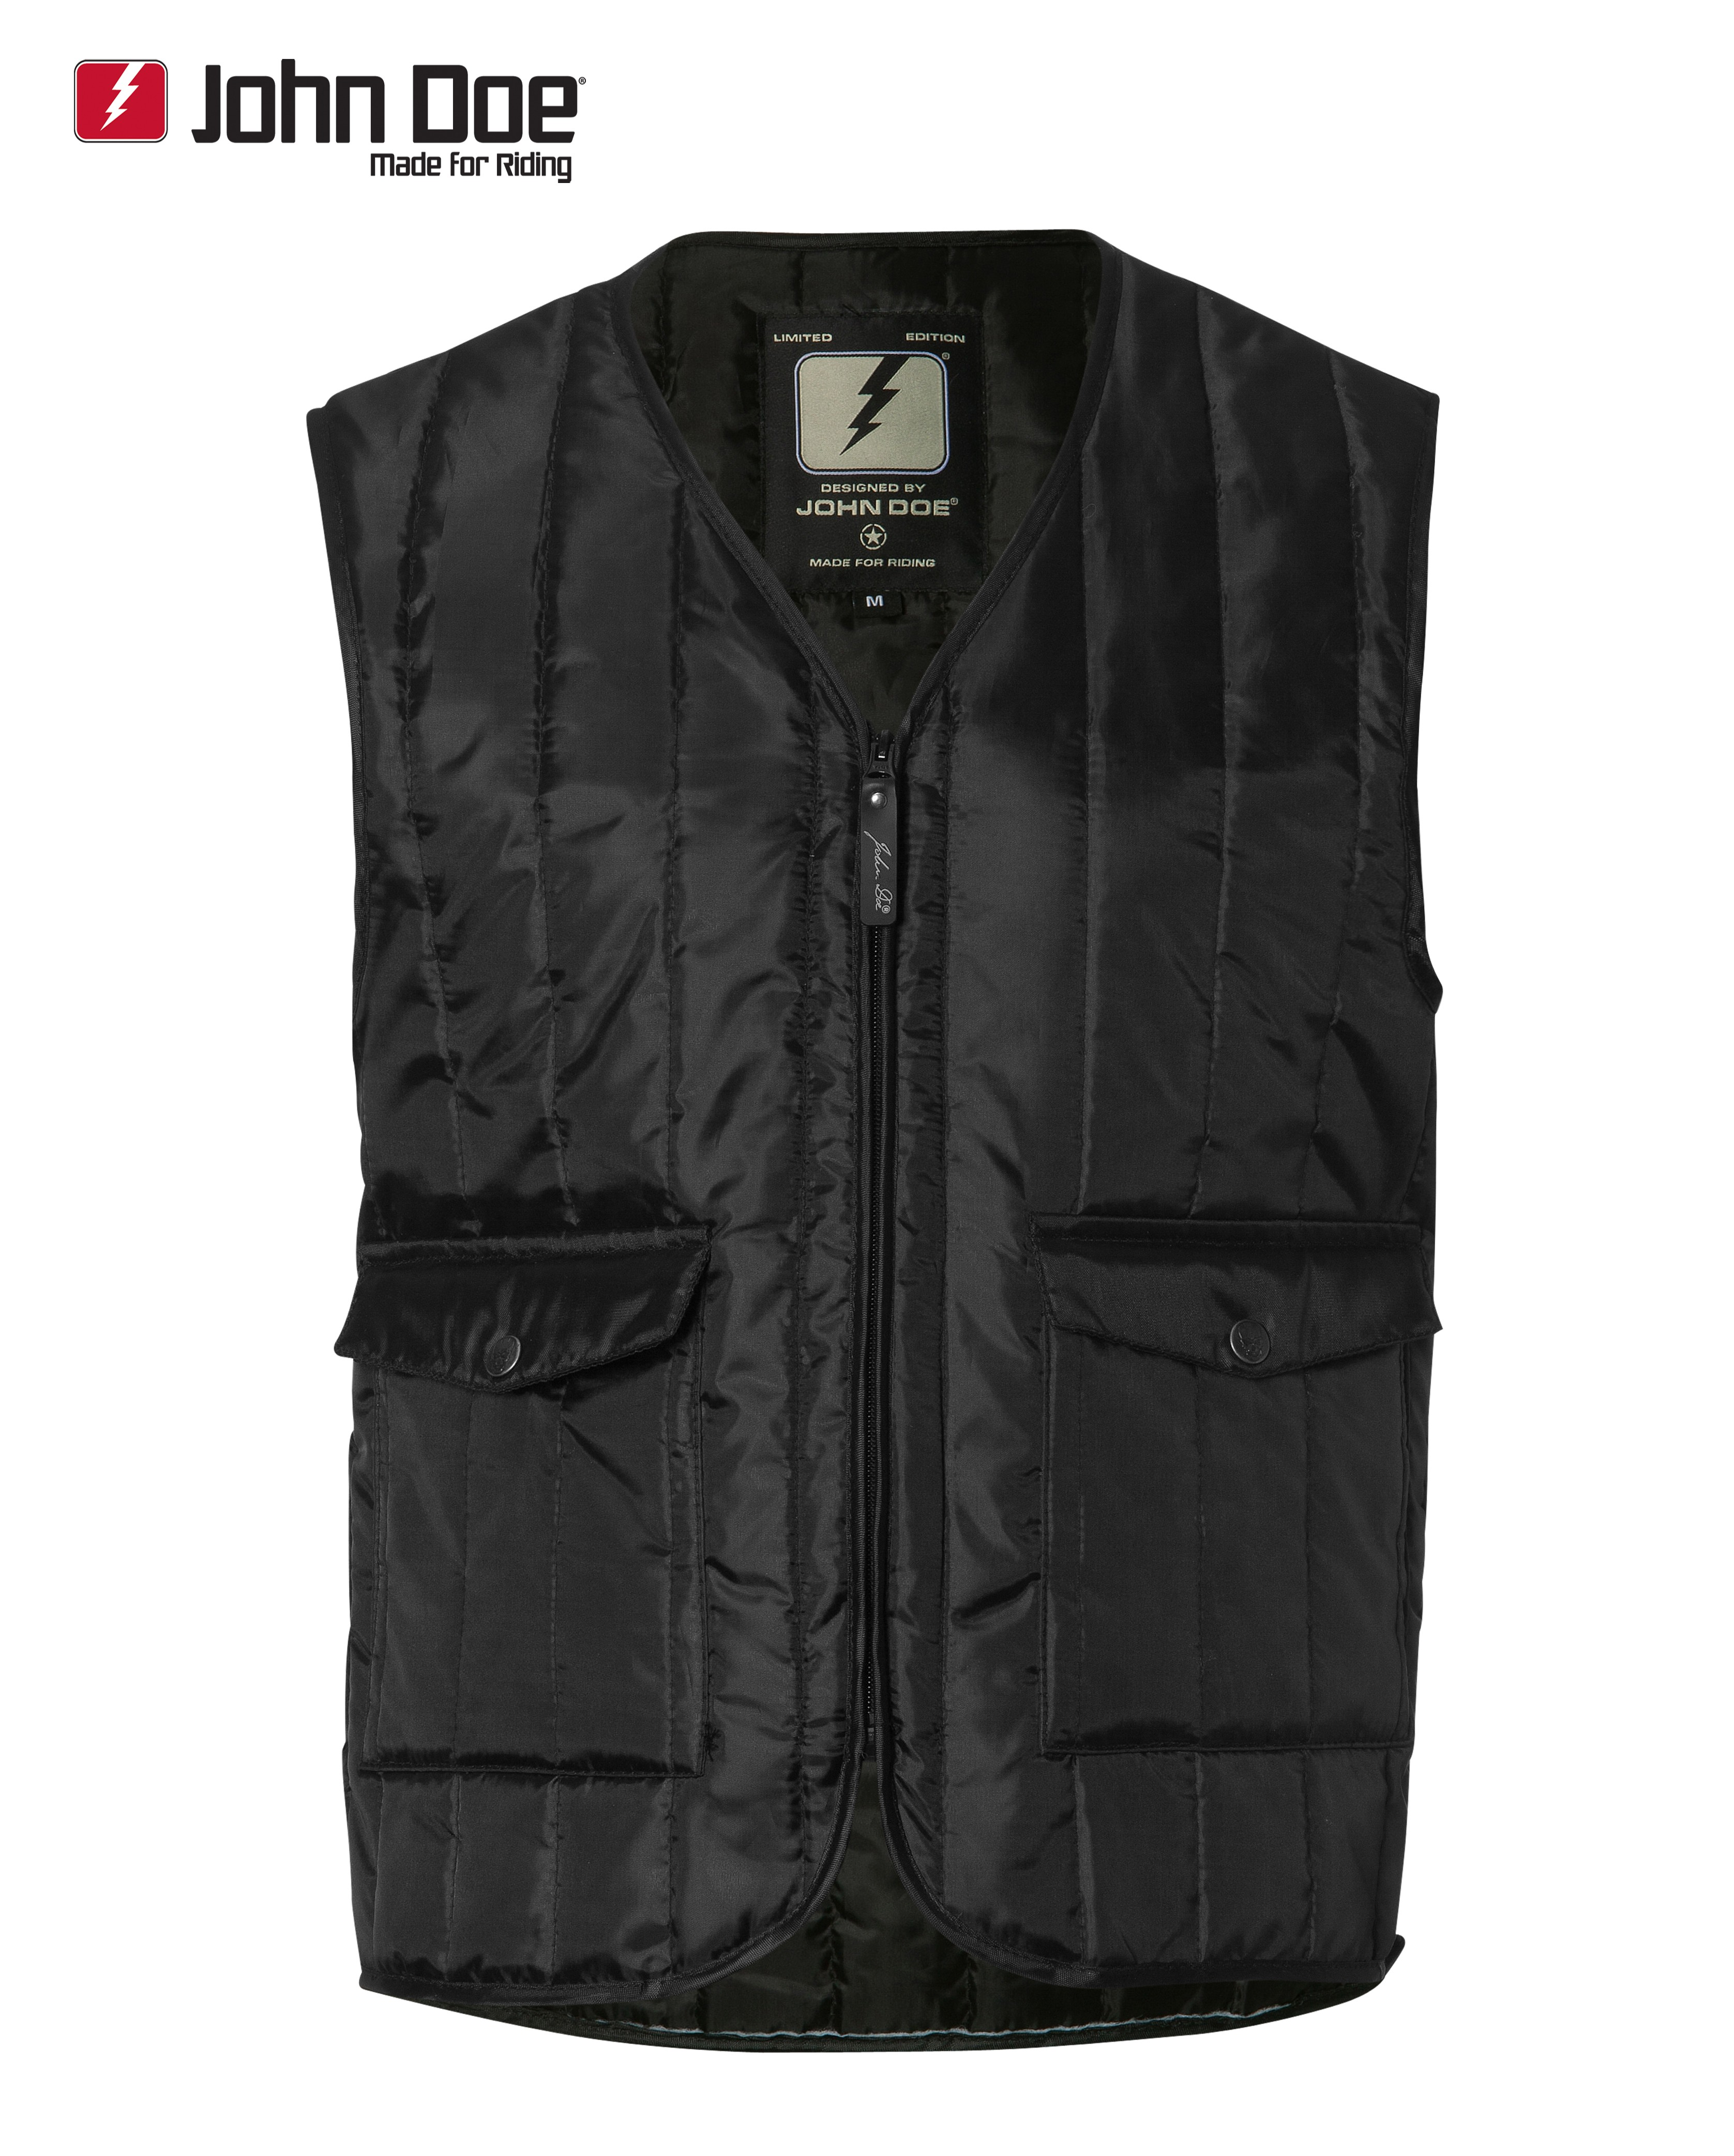 john doe basic vest hoodies jacken freizeitbekleidung. Black Bedroom Furniture Sets. Home Design Ideas